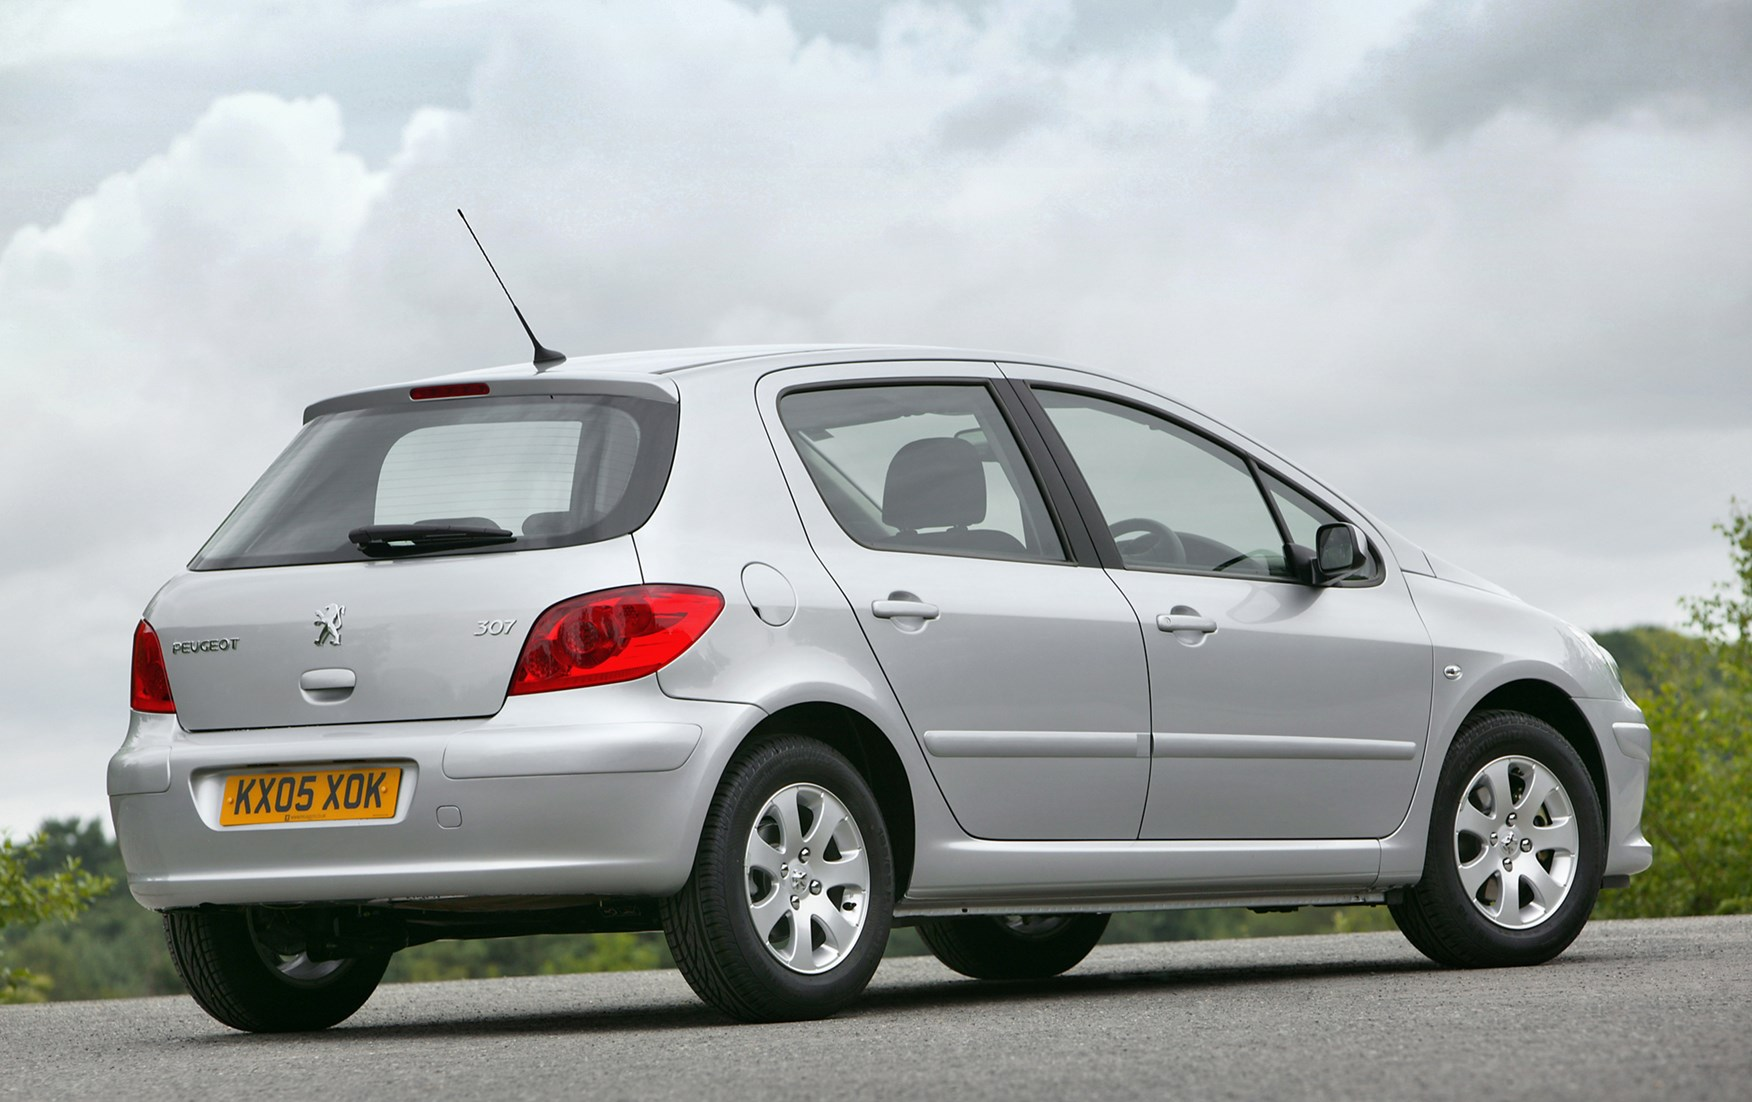 Peugeot 307 I 2001 - 2005 Cabriolet :: OUTSTANDING CARS